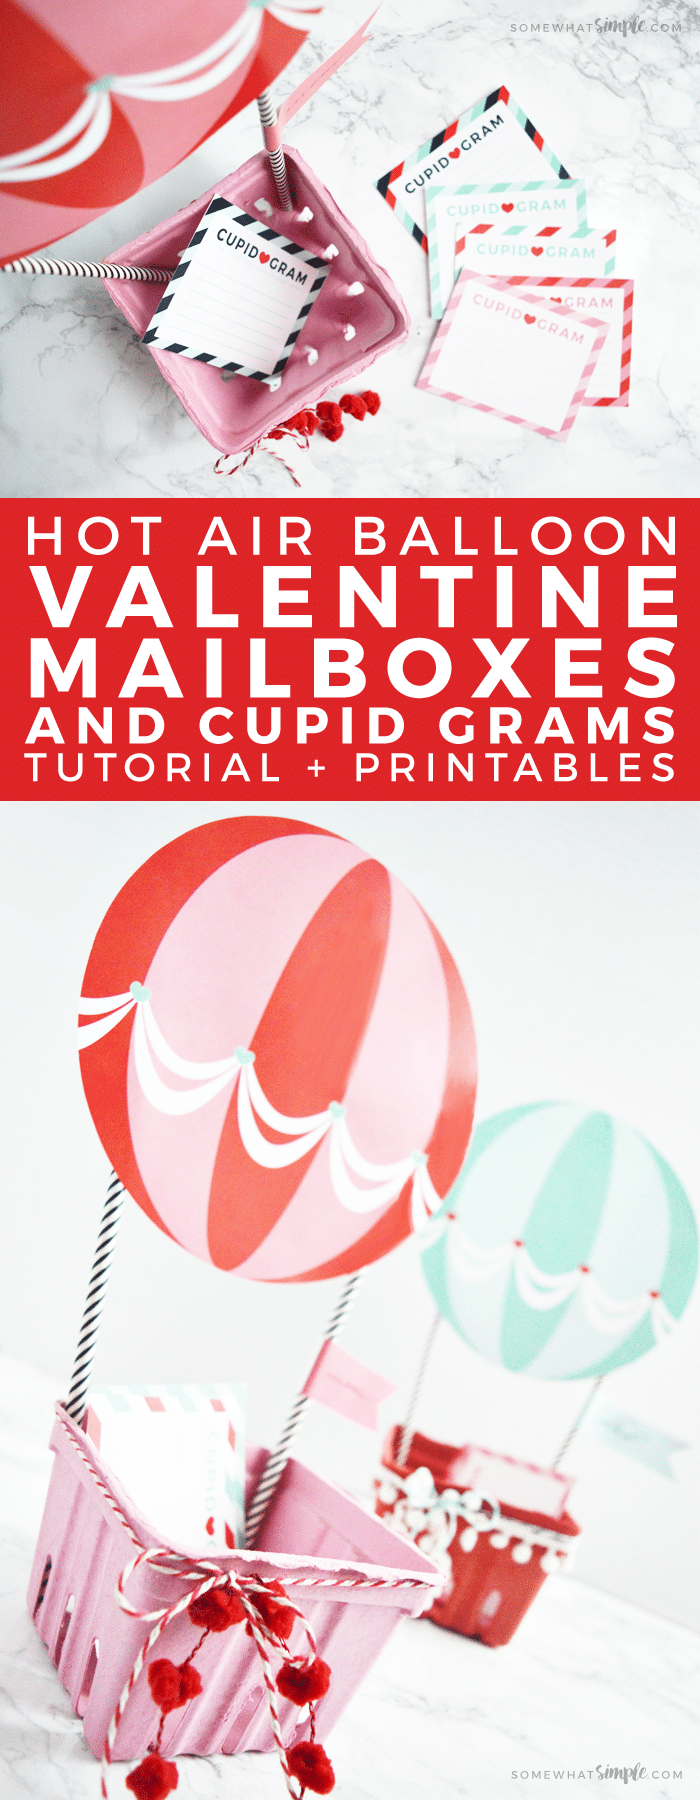 Want to make Valentine Boxes this year that are insanely darling, but super easy and quick to put together? Then you have to check out this adorable Hot Air BalloonValentine Box idea!